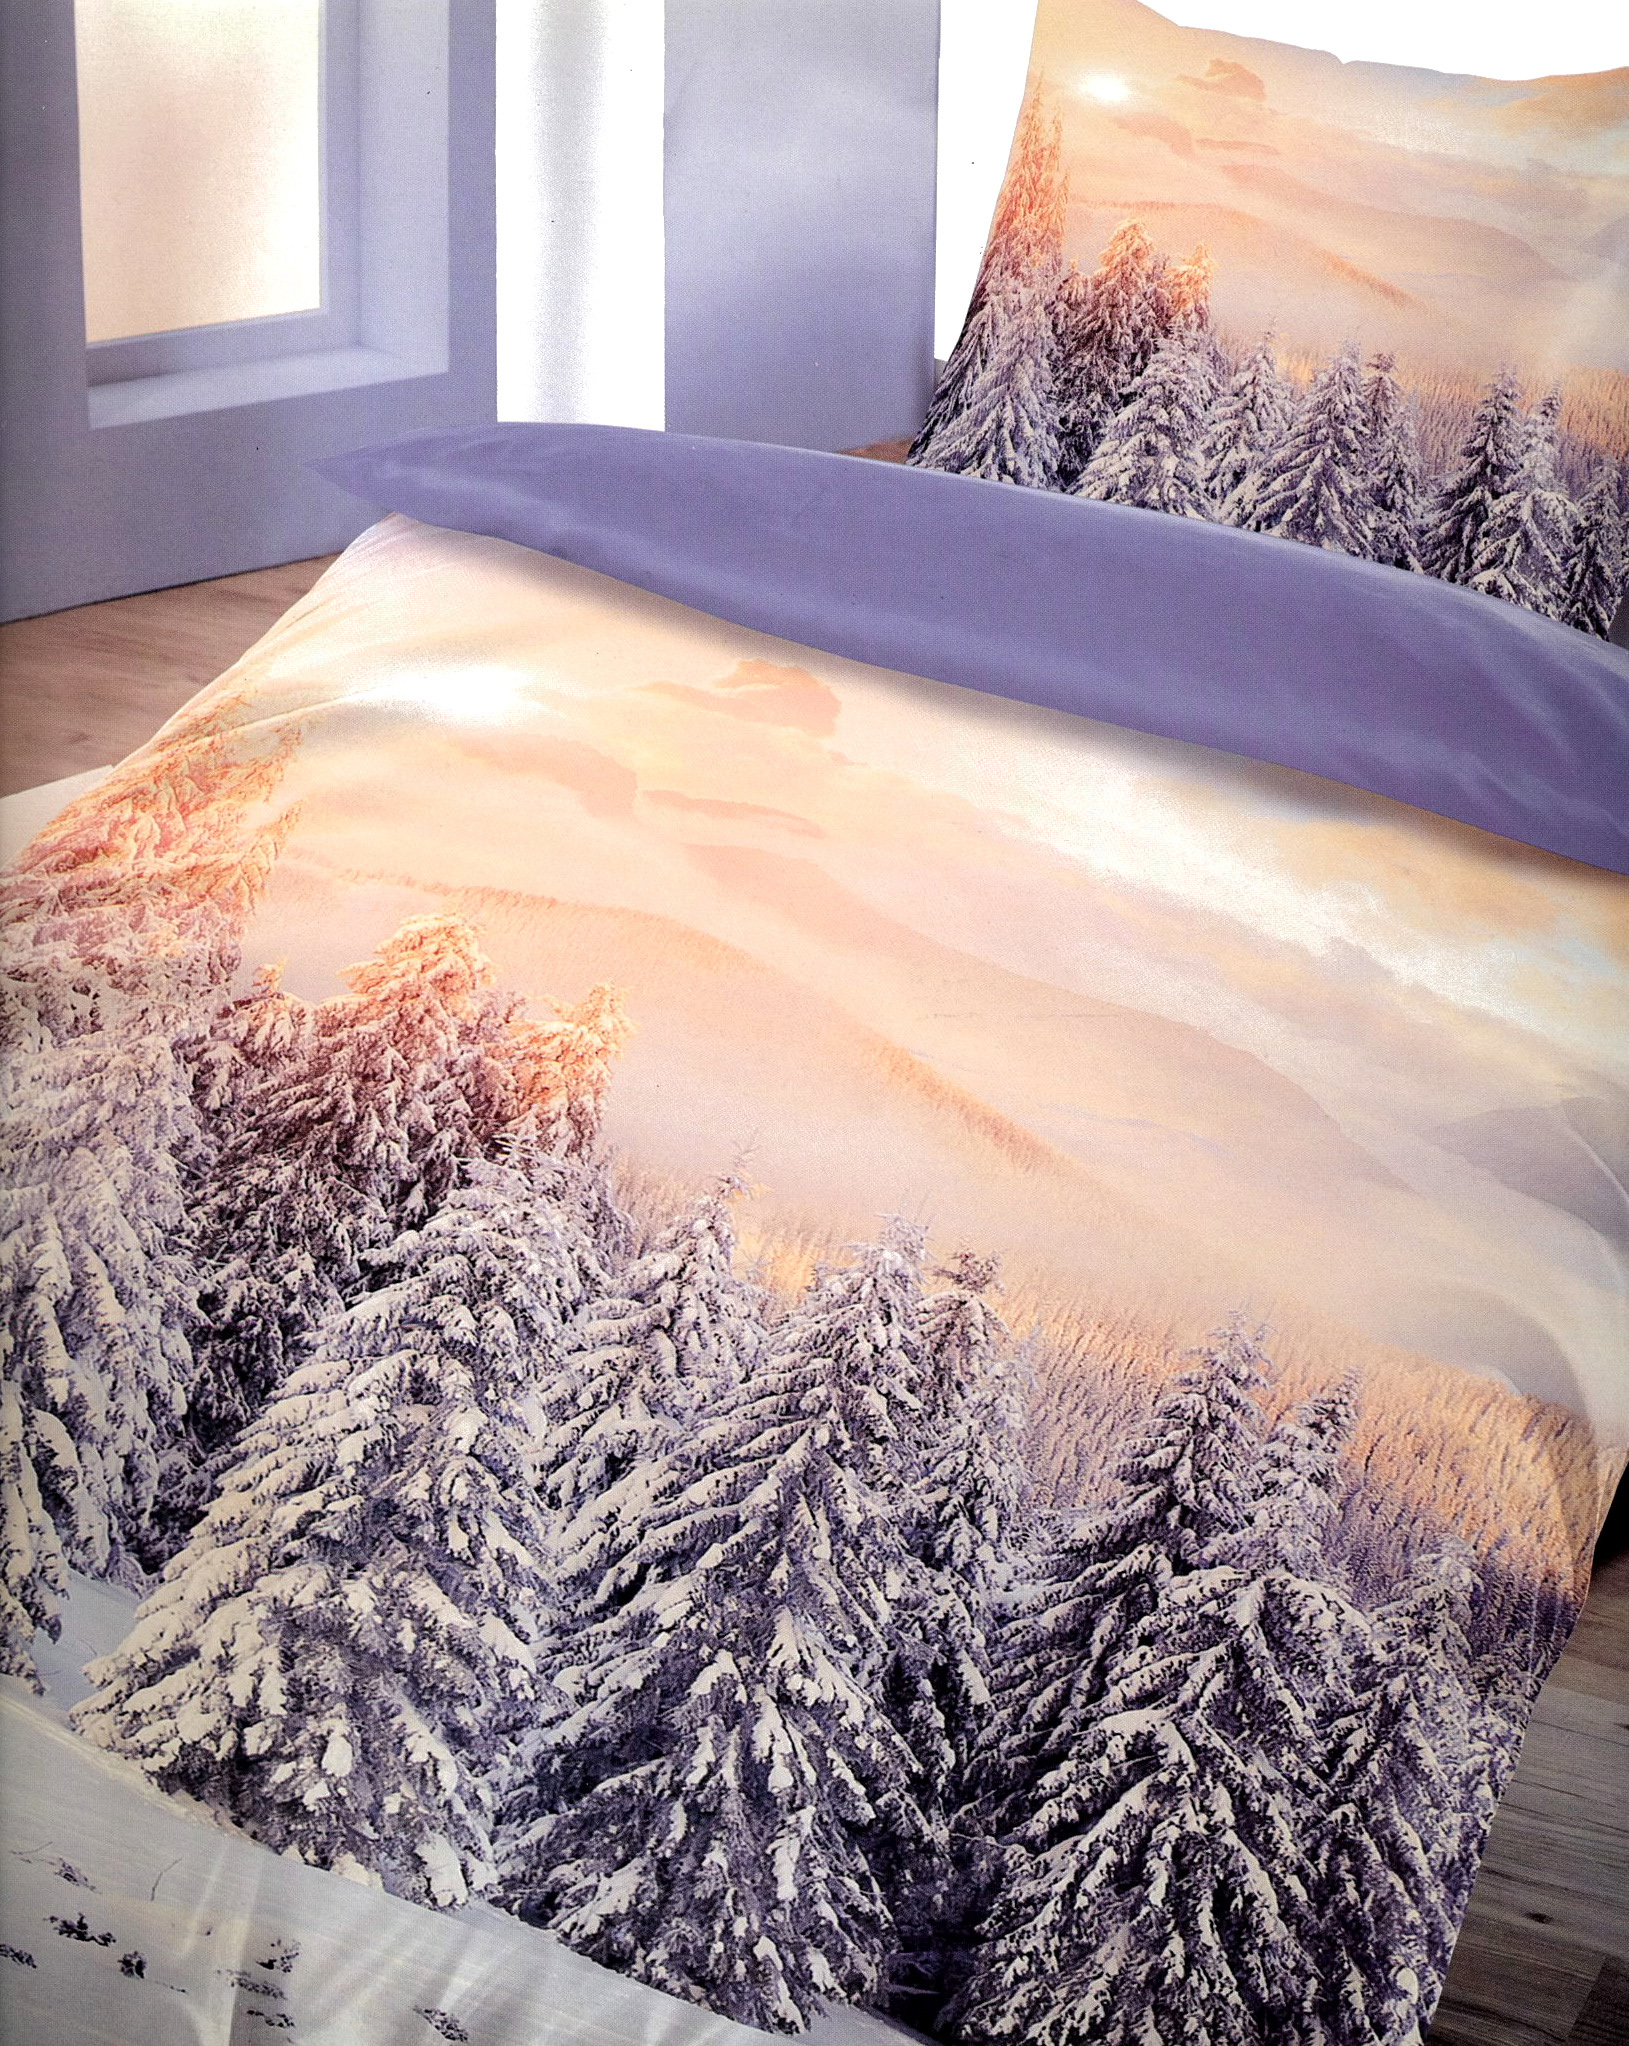 3tlg bettw sche fleece 135x200cm schnee tannen wald warm. Black Bedroom Furniture Sets. Home Design Ideas